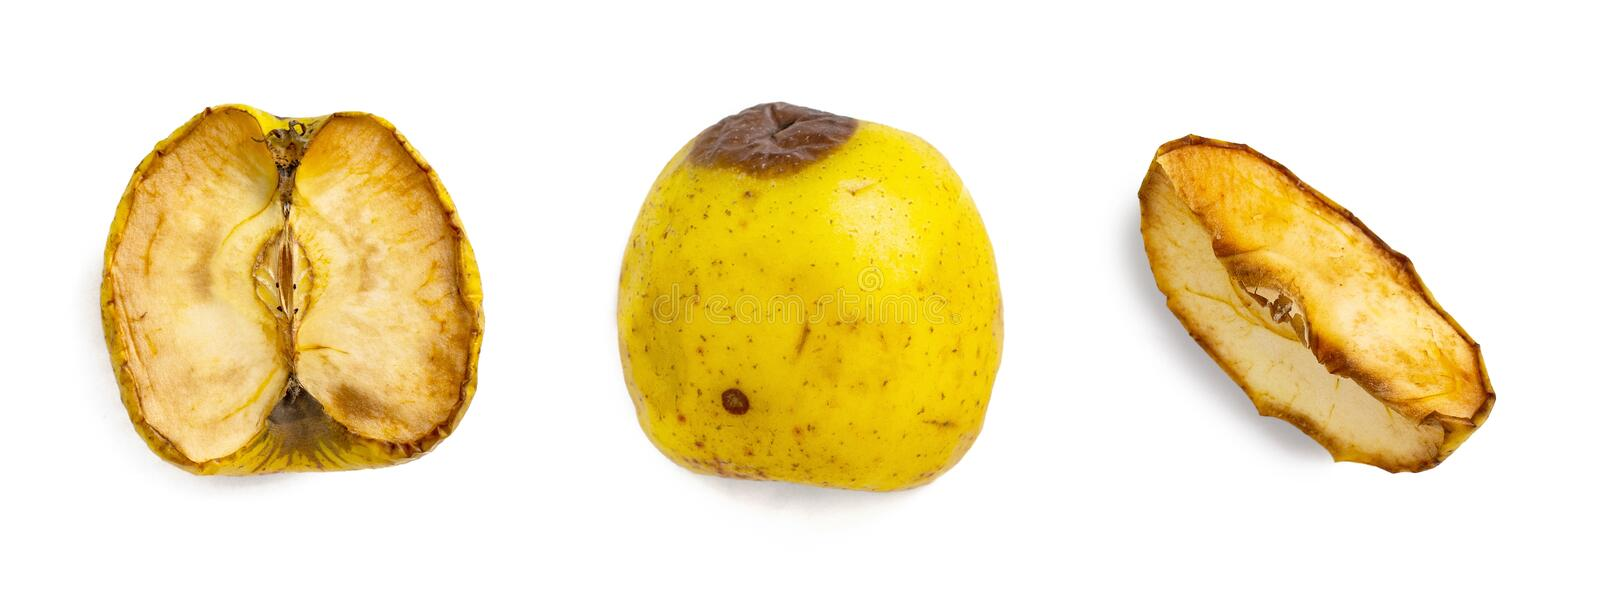 Set of spoiled apple or rotting apple isolated on white background stock photo